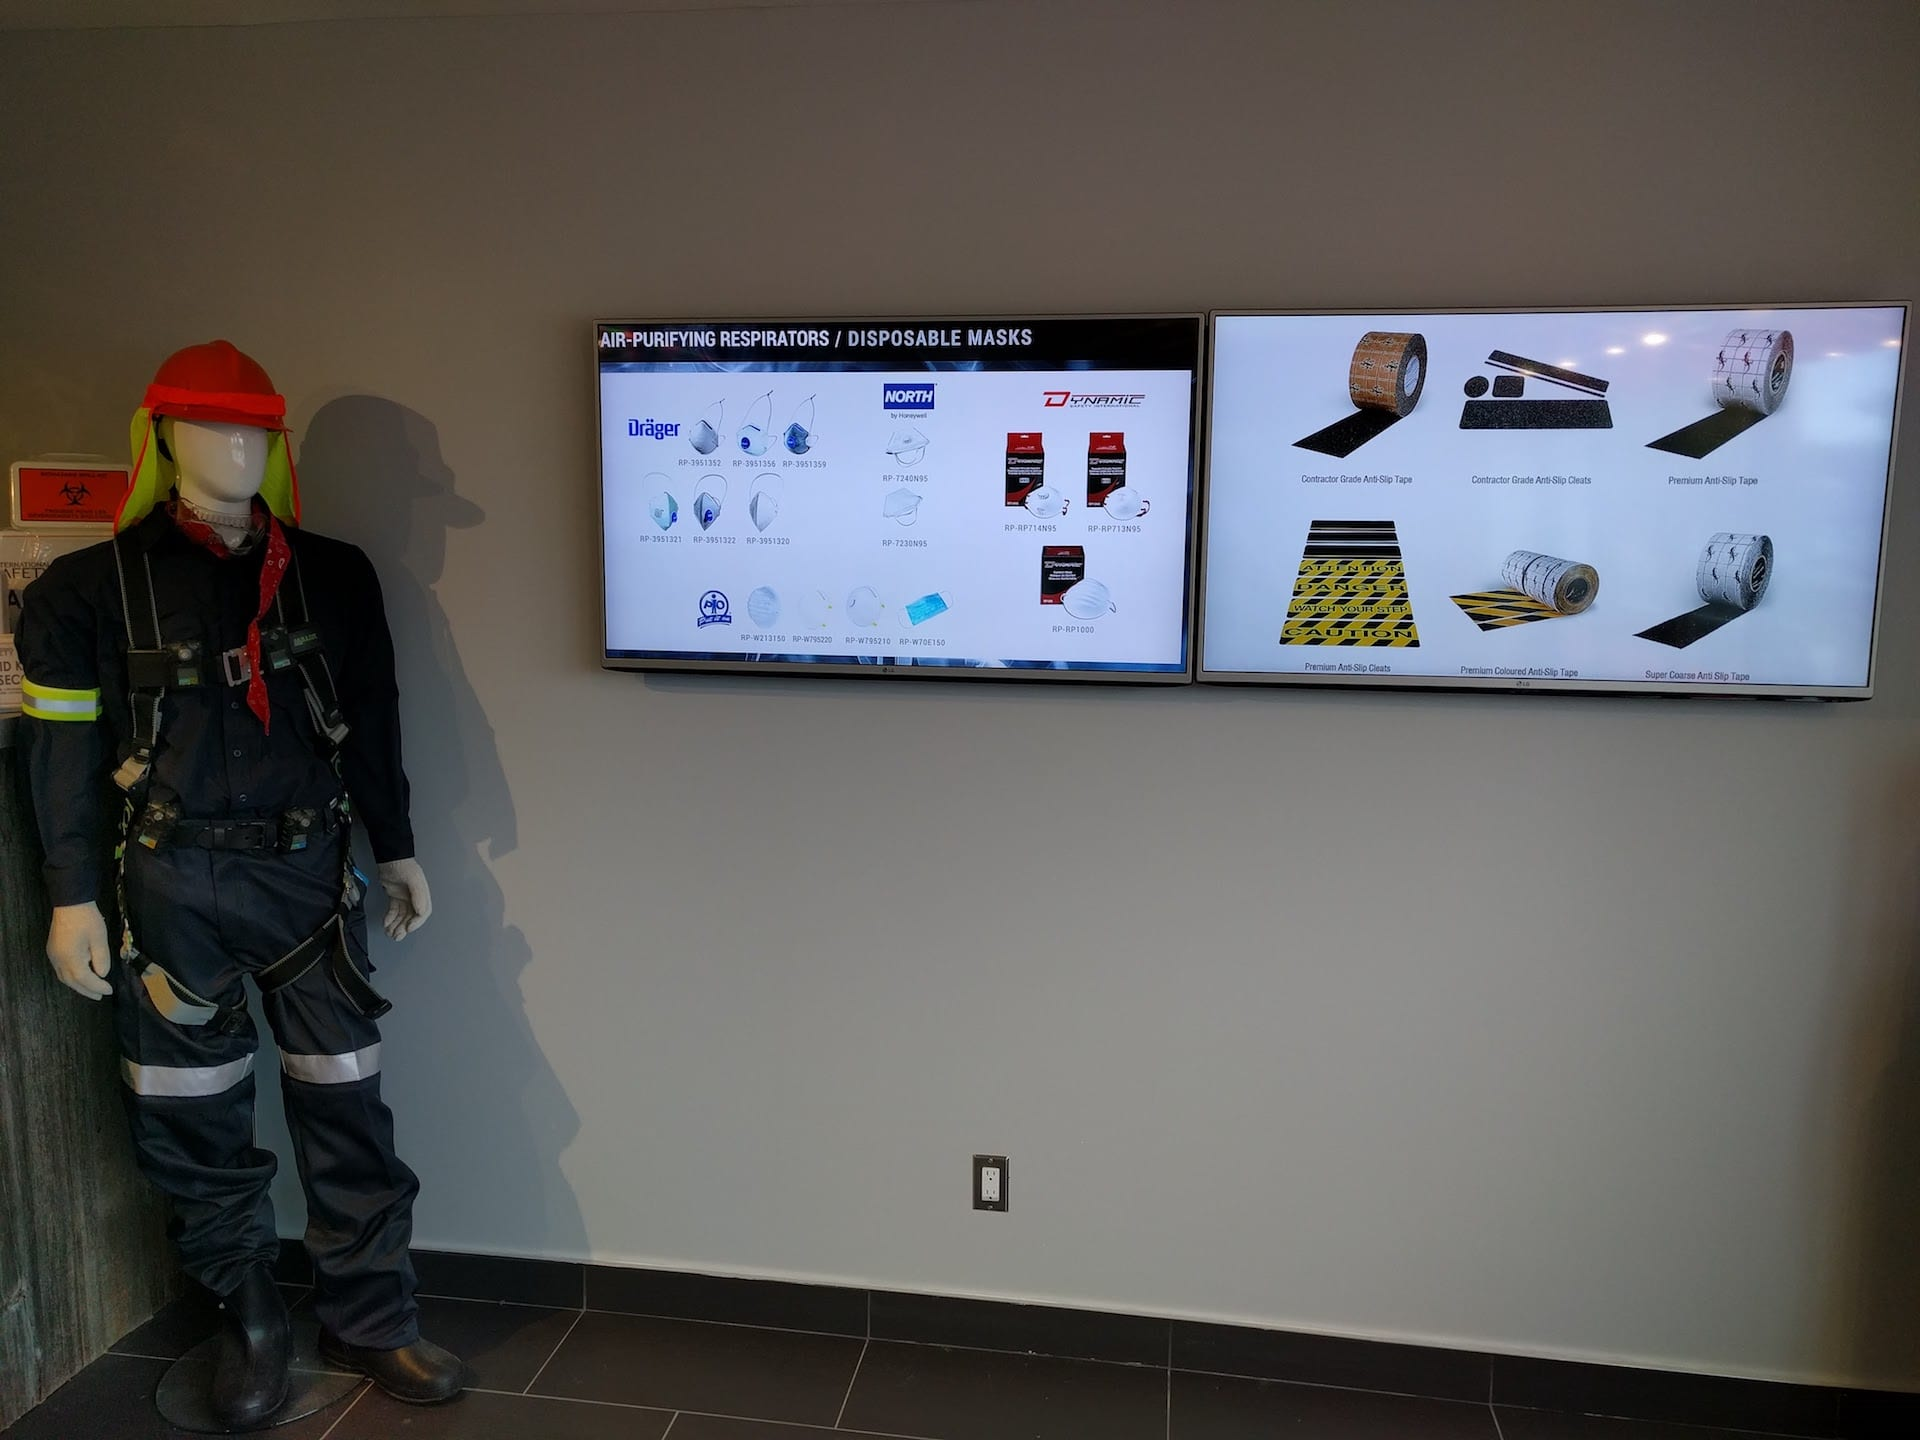 Digital signage for showrooms and manufacturing